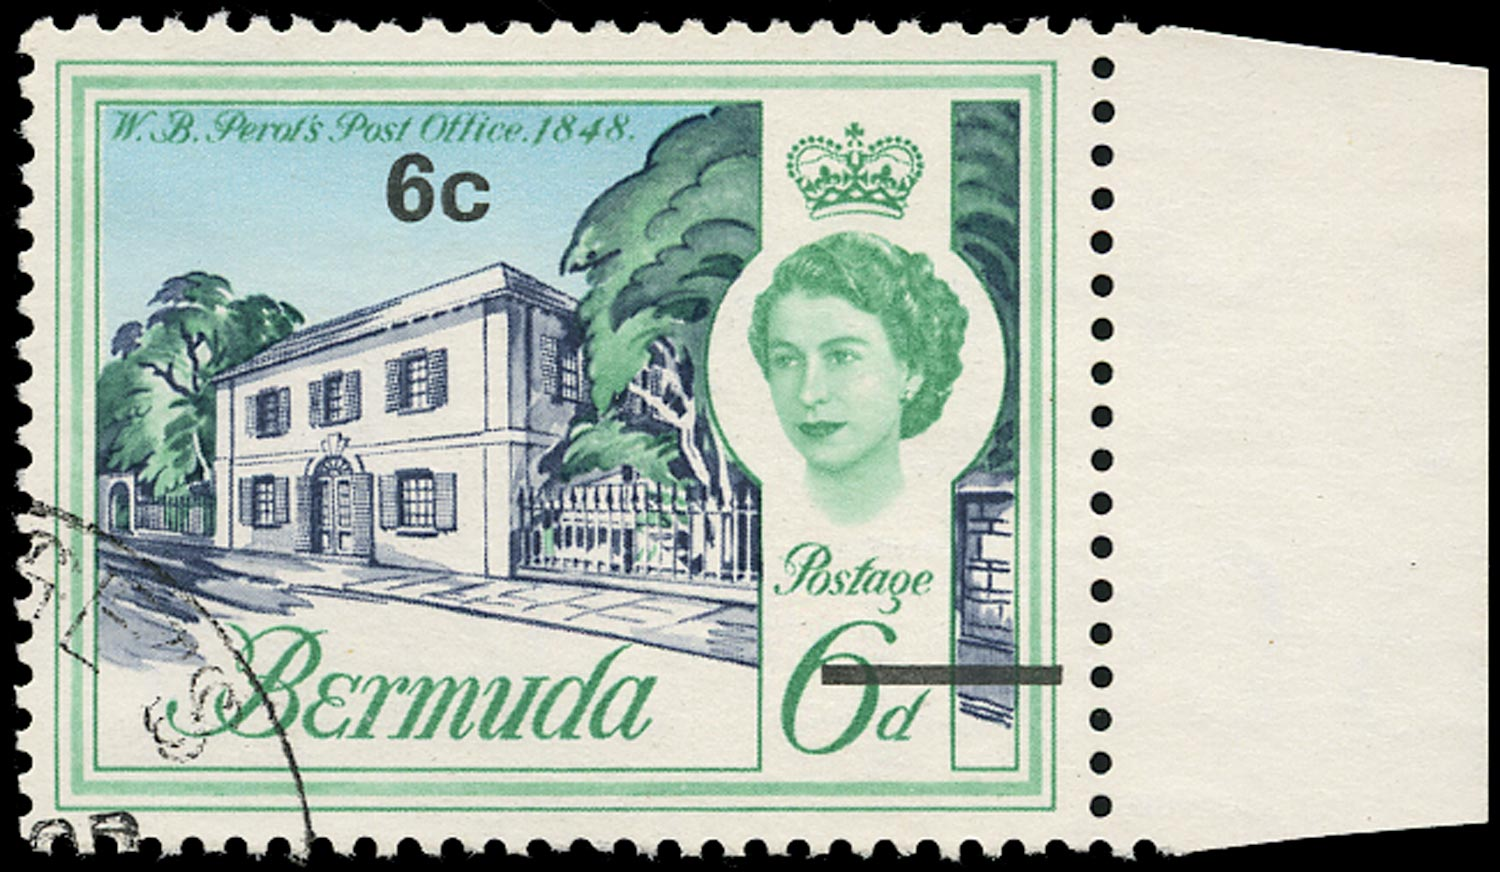 BERMUDA 1970  SG237w Used decimal currency 6c on 6d Perot's Post Office watermark inverted